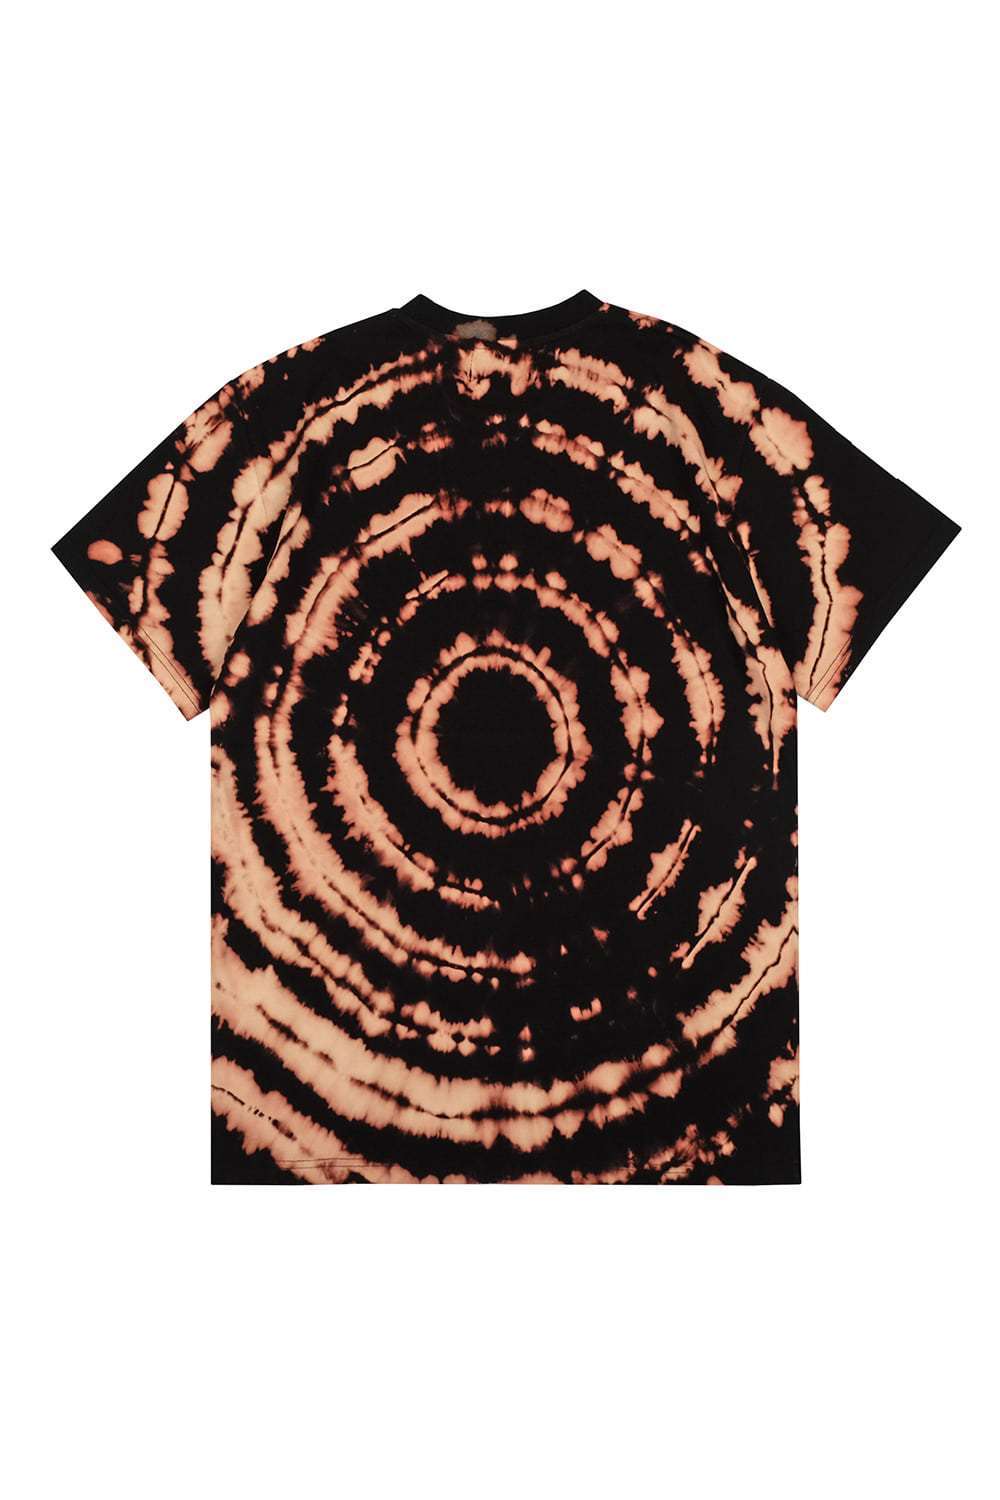 Discharge print  Short Sleeve T-shirts [Black]